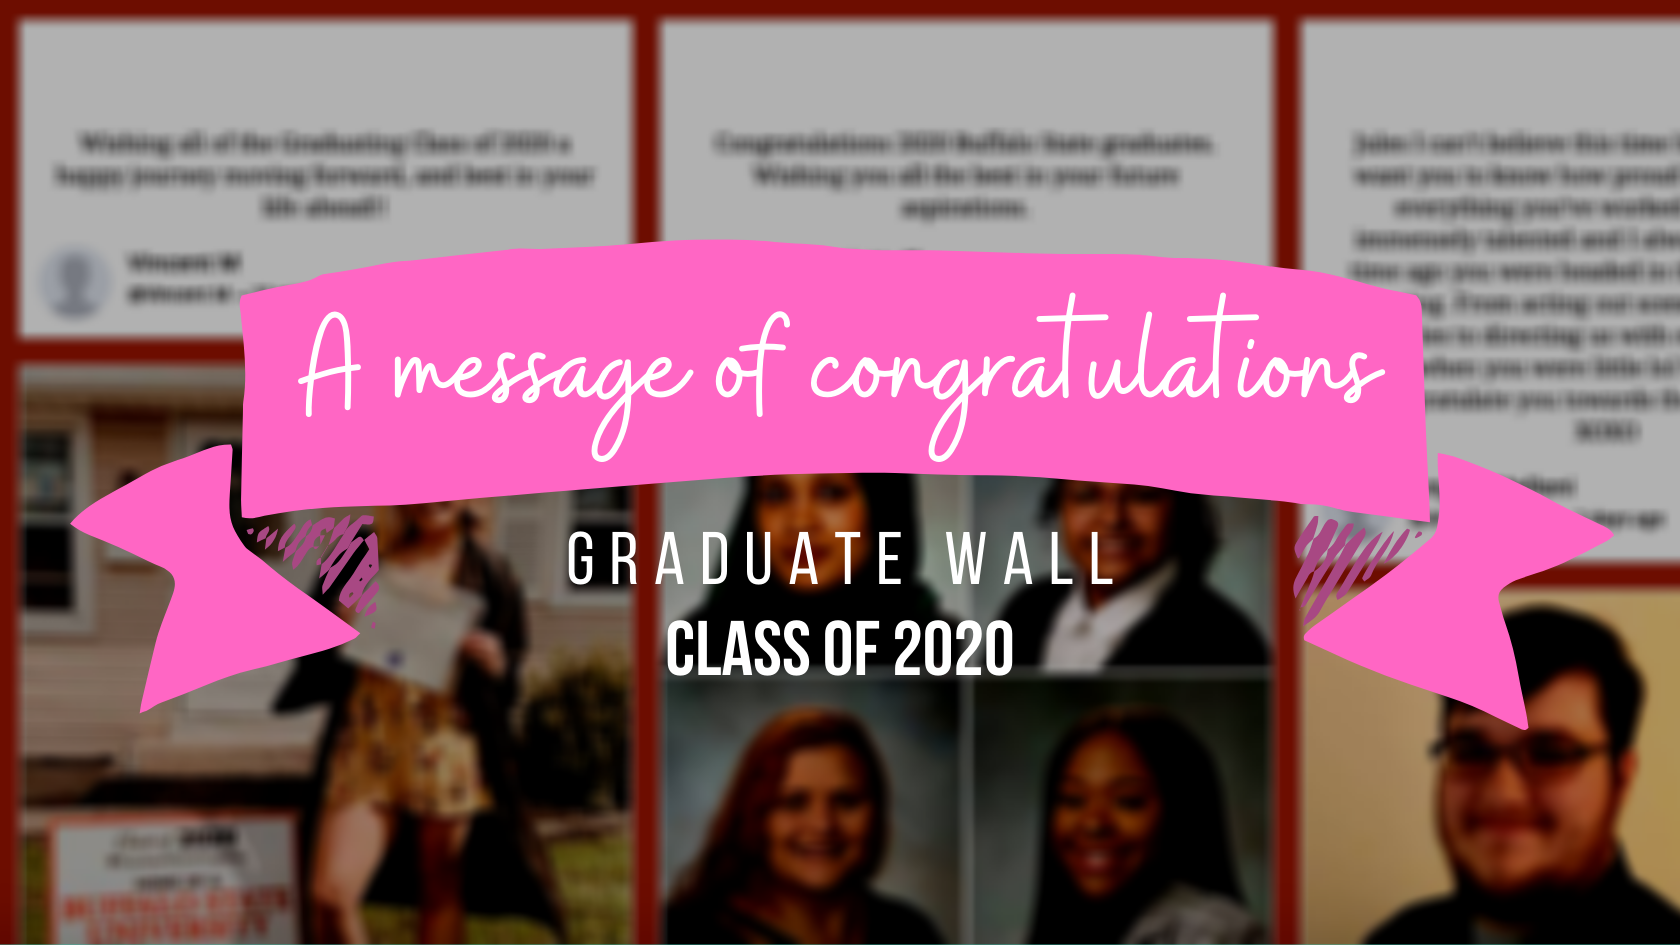 a message of congratulations graduate wall class of 2020